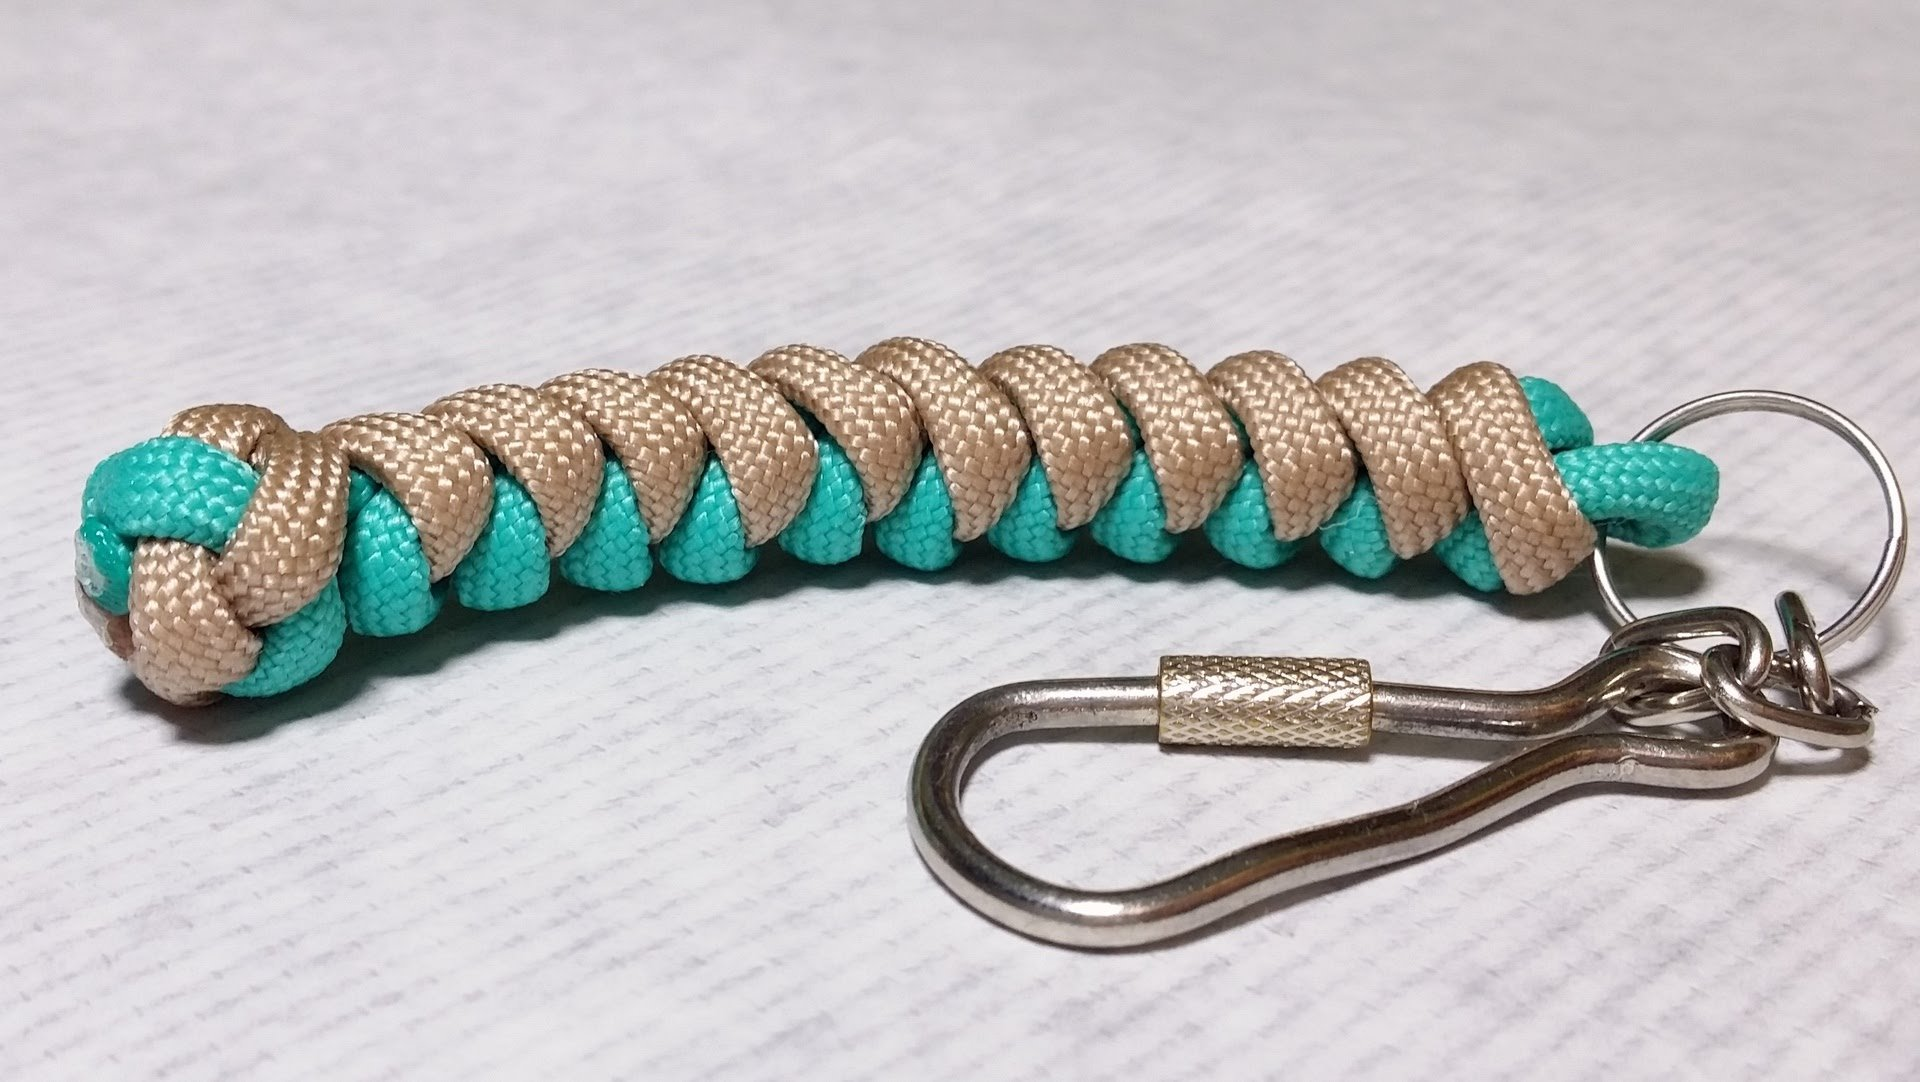 20 DIY Paracord Keychains with Instructions | Guide Patterns